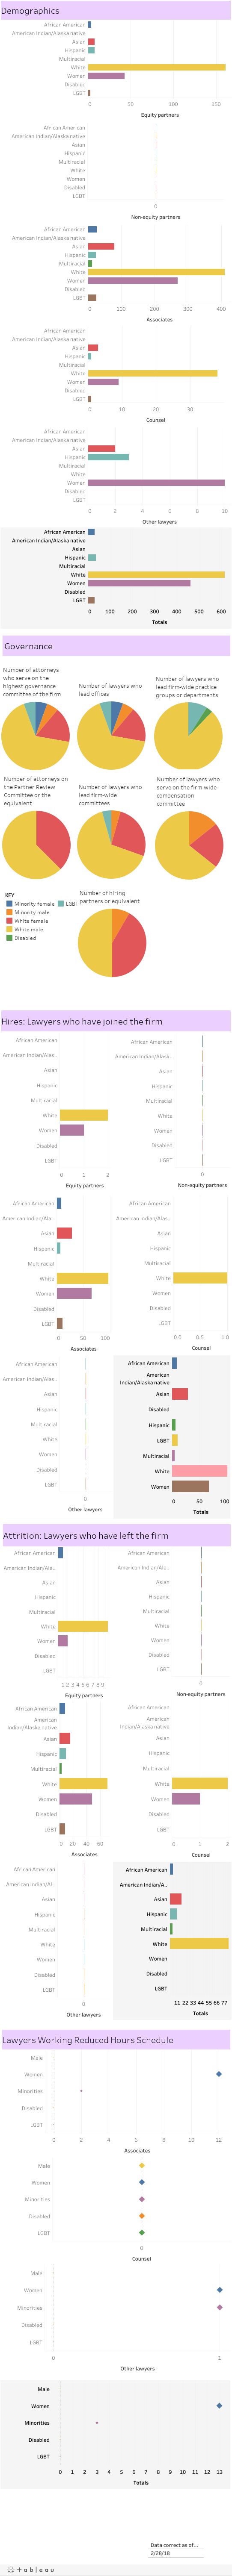 Diversity and inclusion data